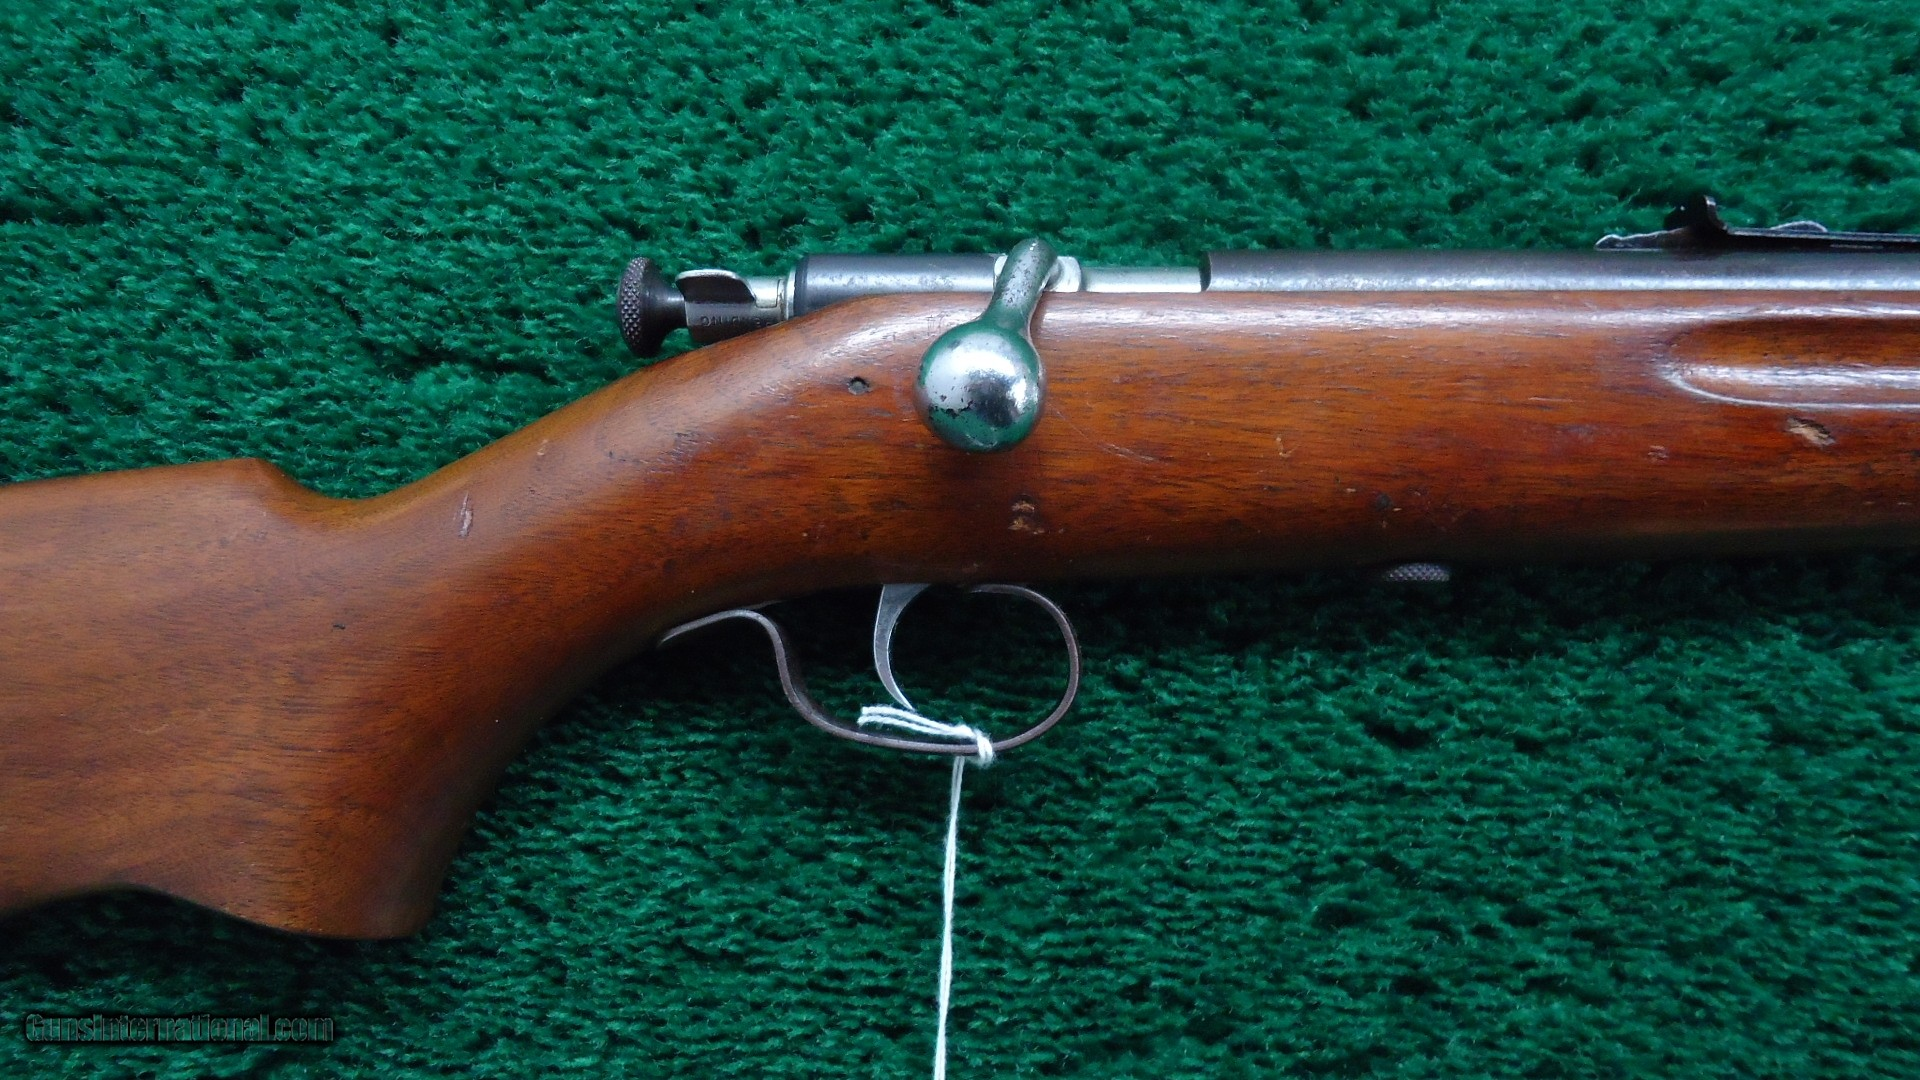 WINCHESTER MODEL 67 BOLT ACTION CALIBER 22 RIFLE - 1 of 13 ...